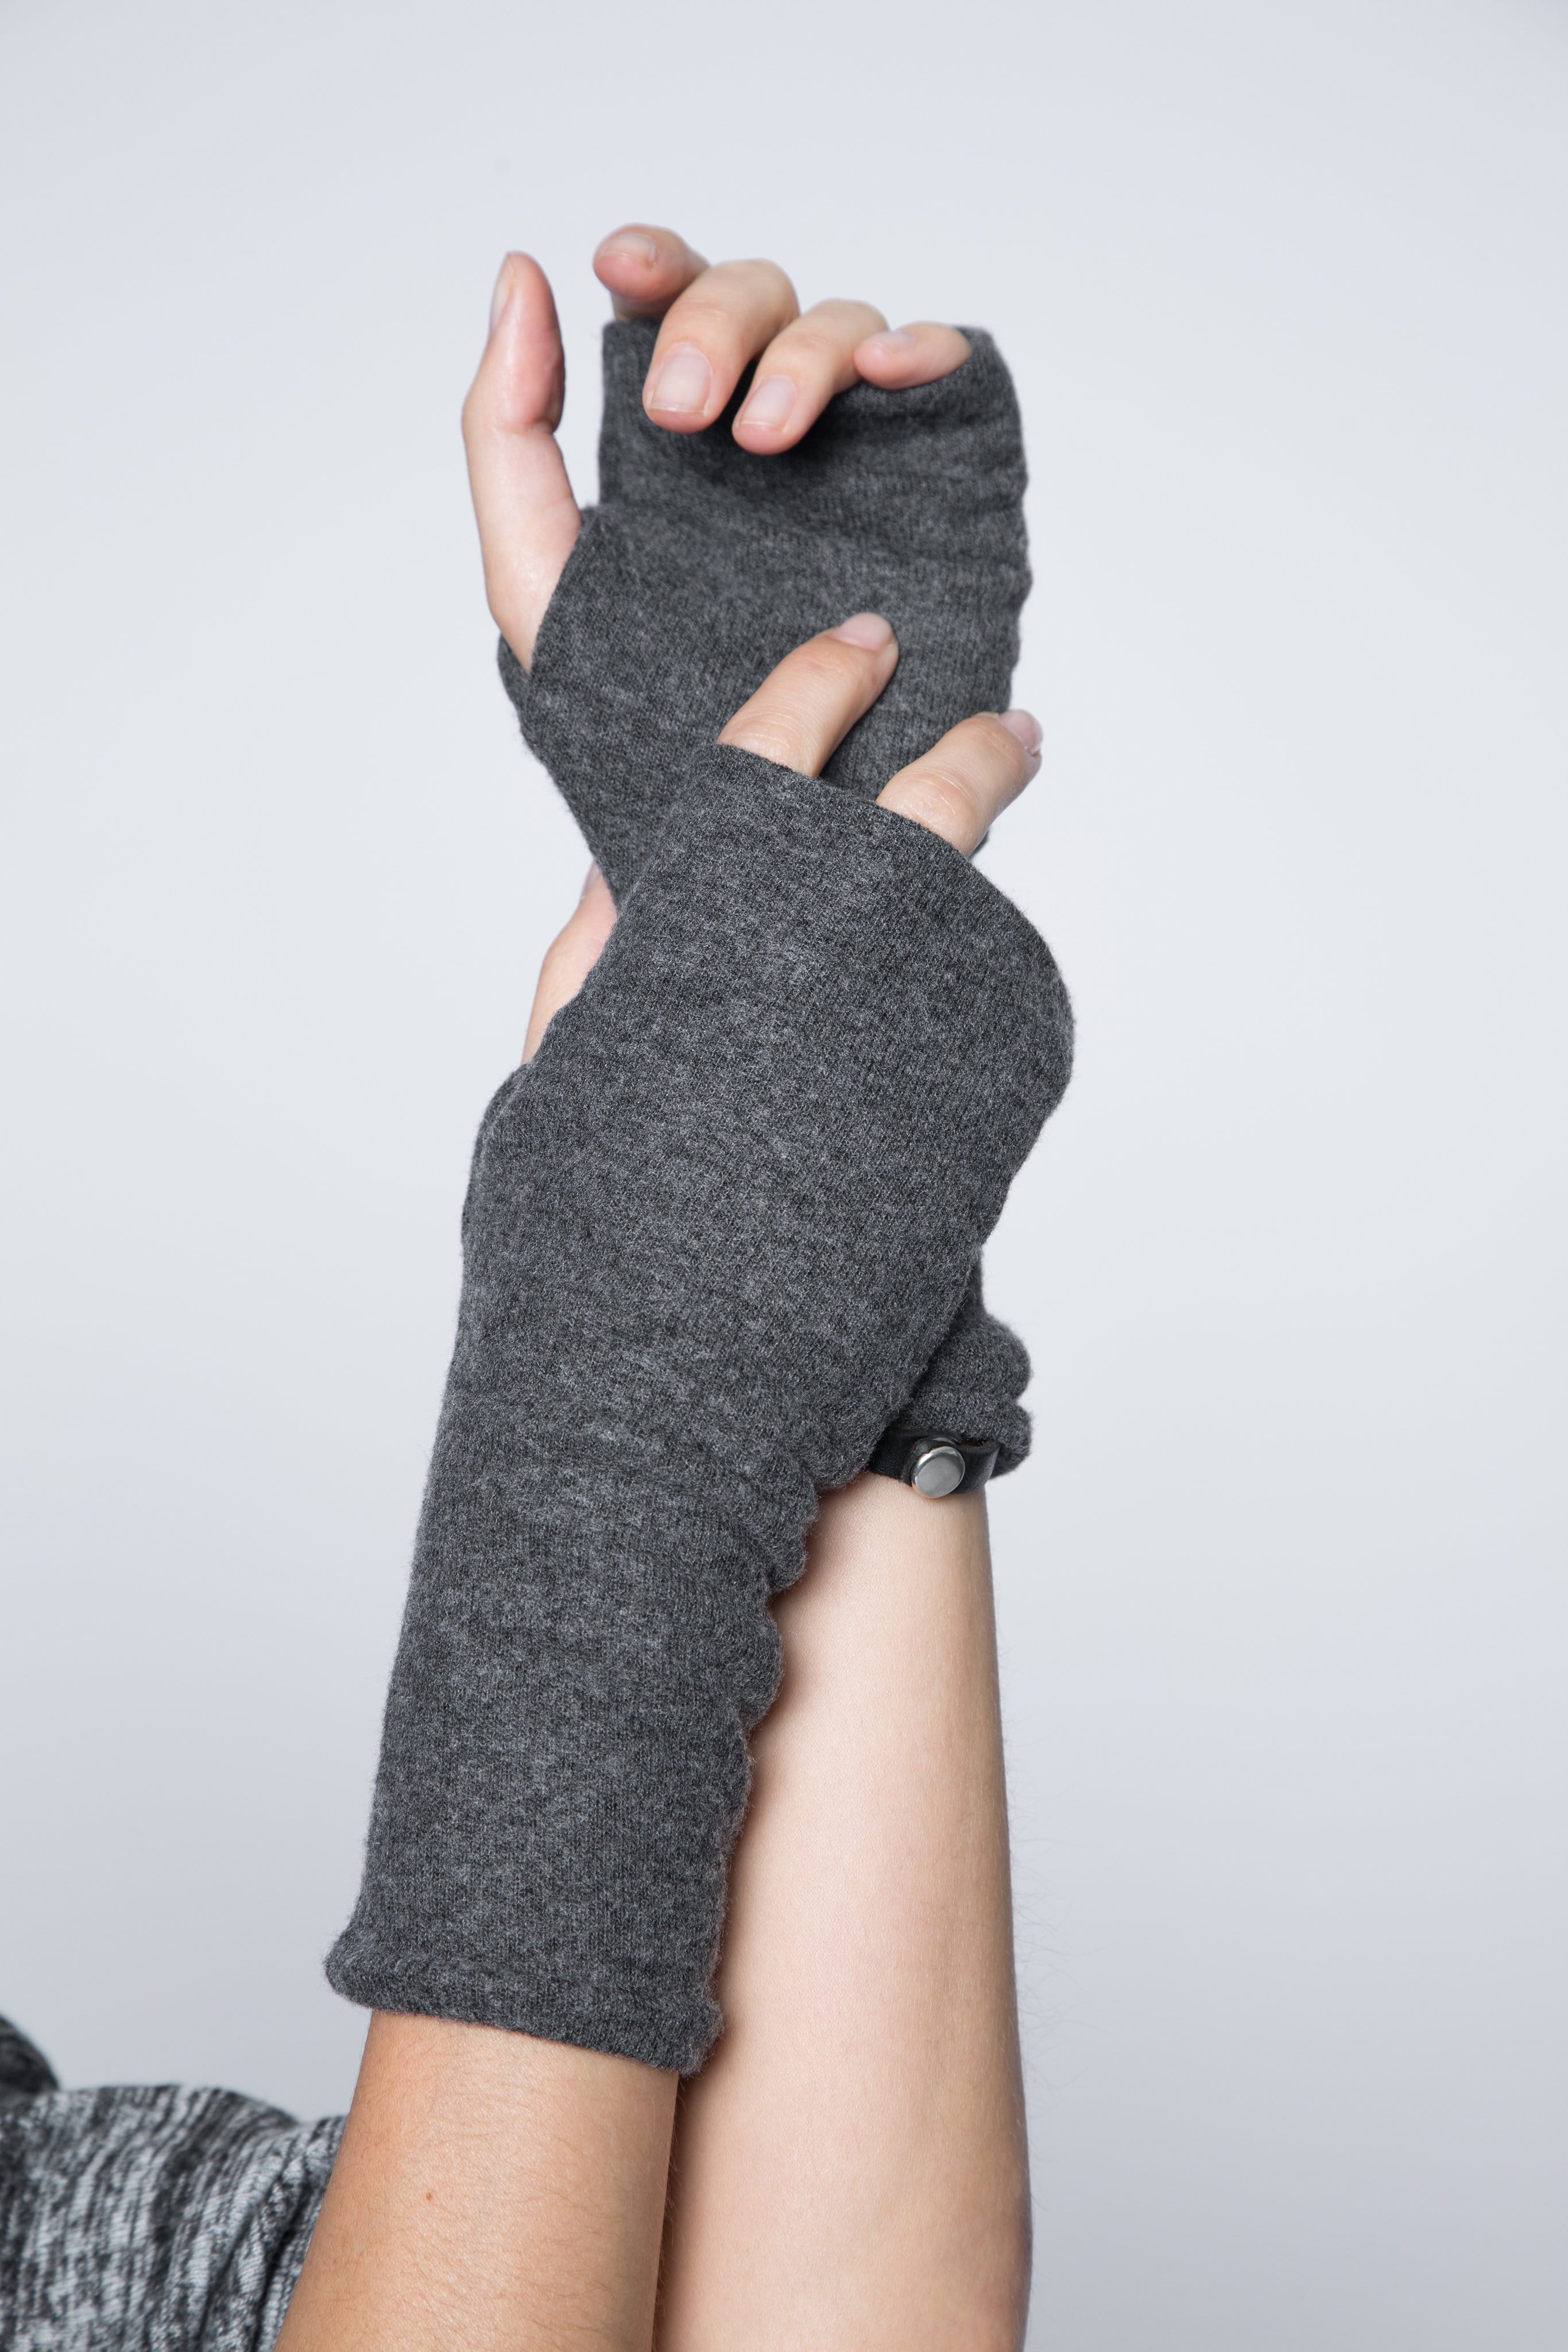 One size double layer fingerless glove in charcoal gray